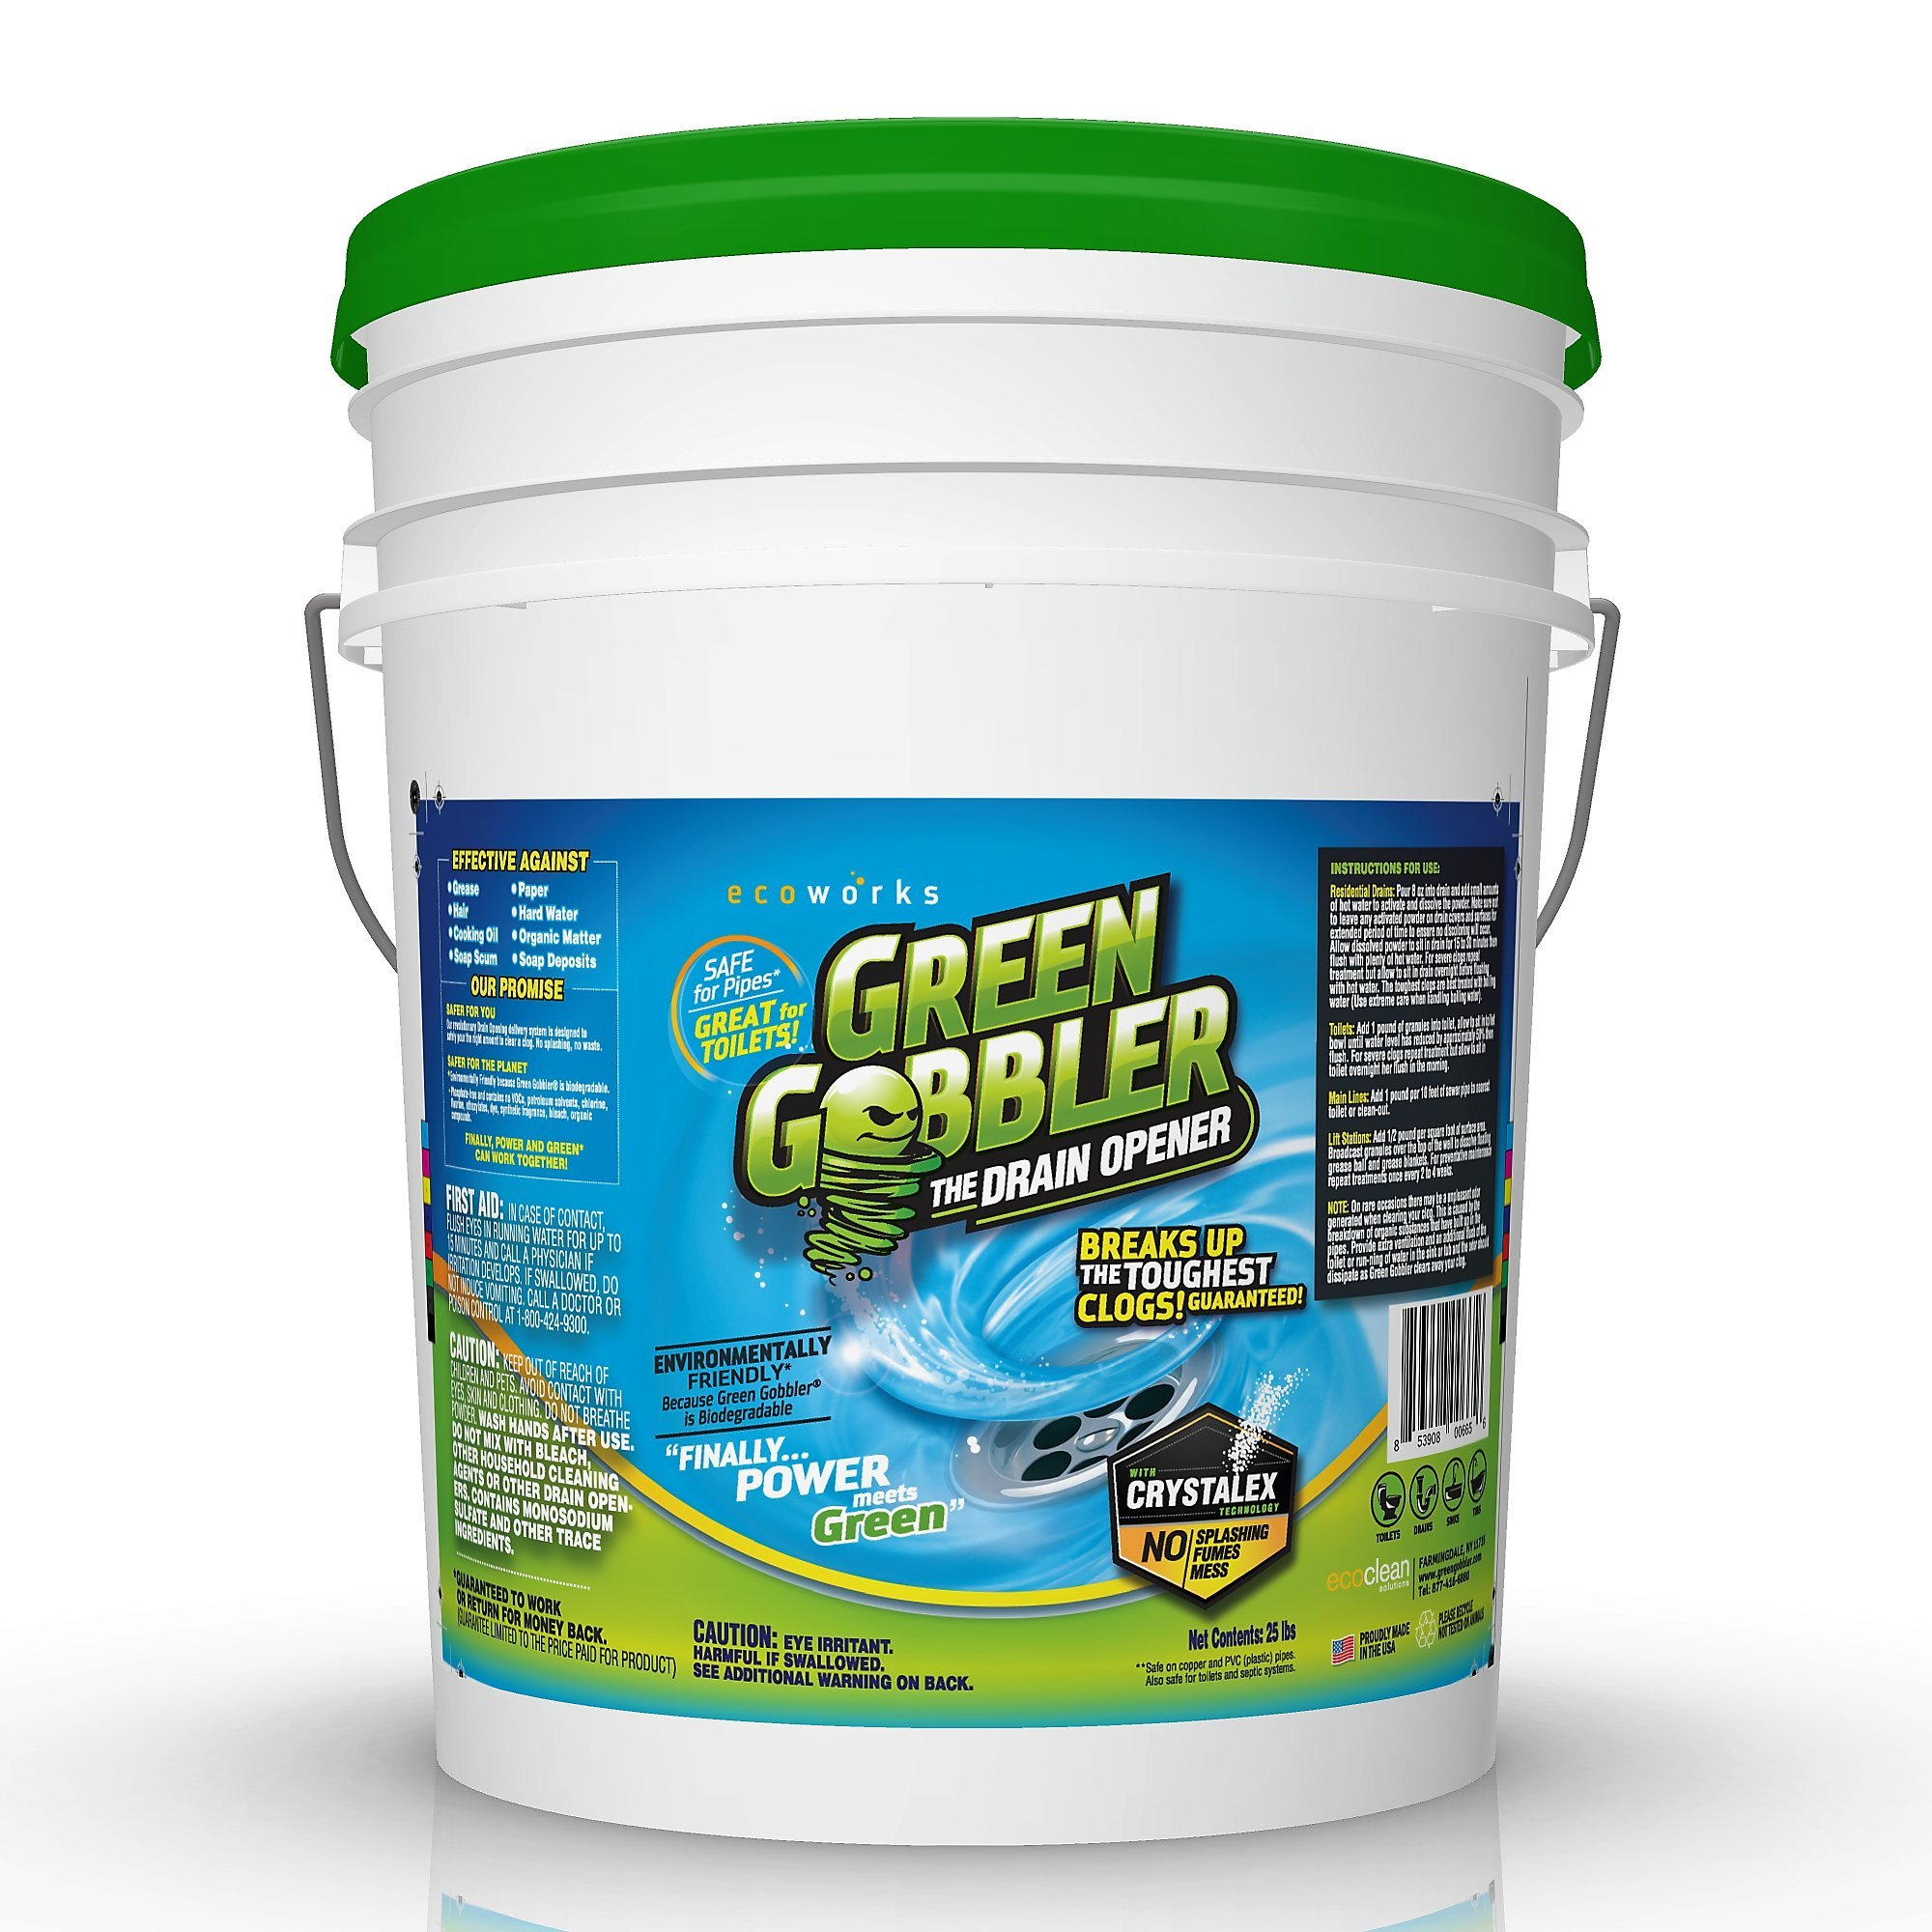 Best Eco Friendly Drain Line Cleaner For Main Drain Lines Sink and Floor Pipes Sewers Urinals and Toilets For use in Residential or Commercial Drains by Green Gobbler